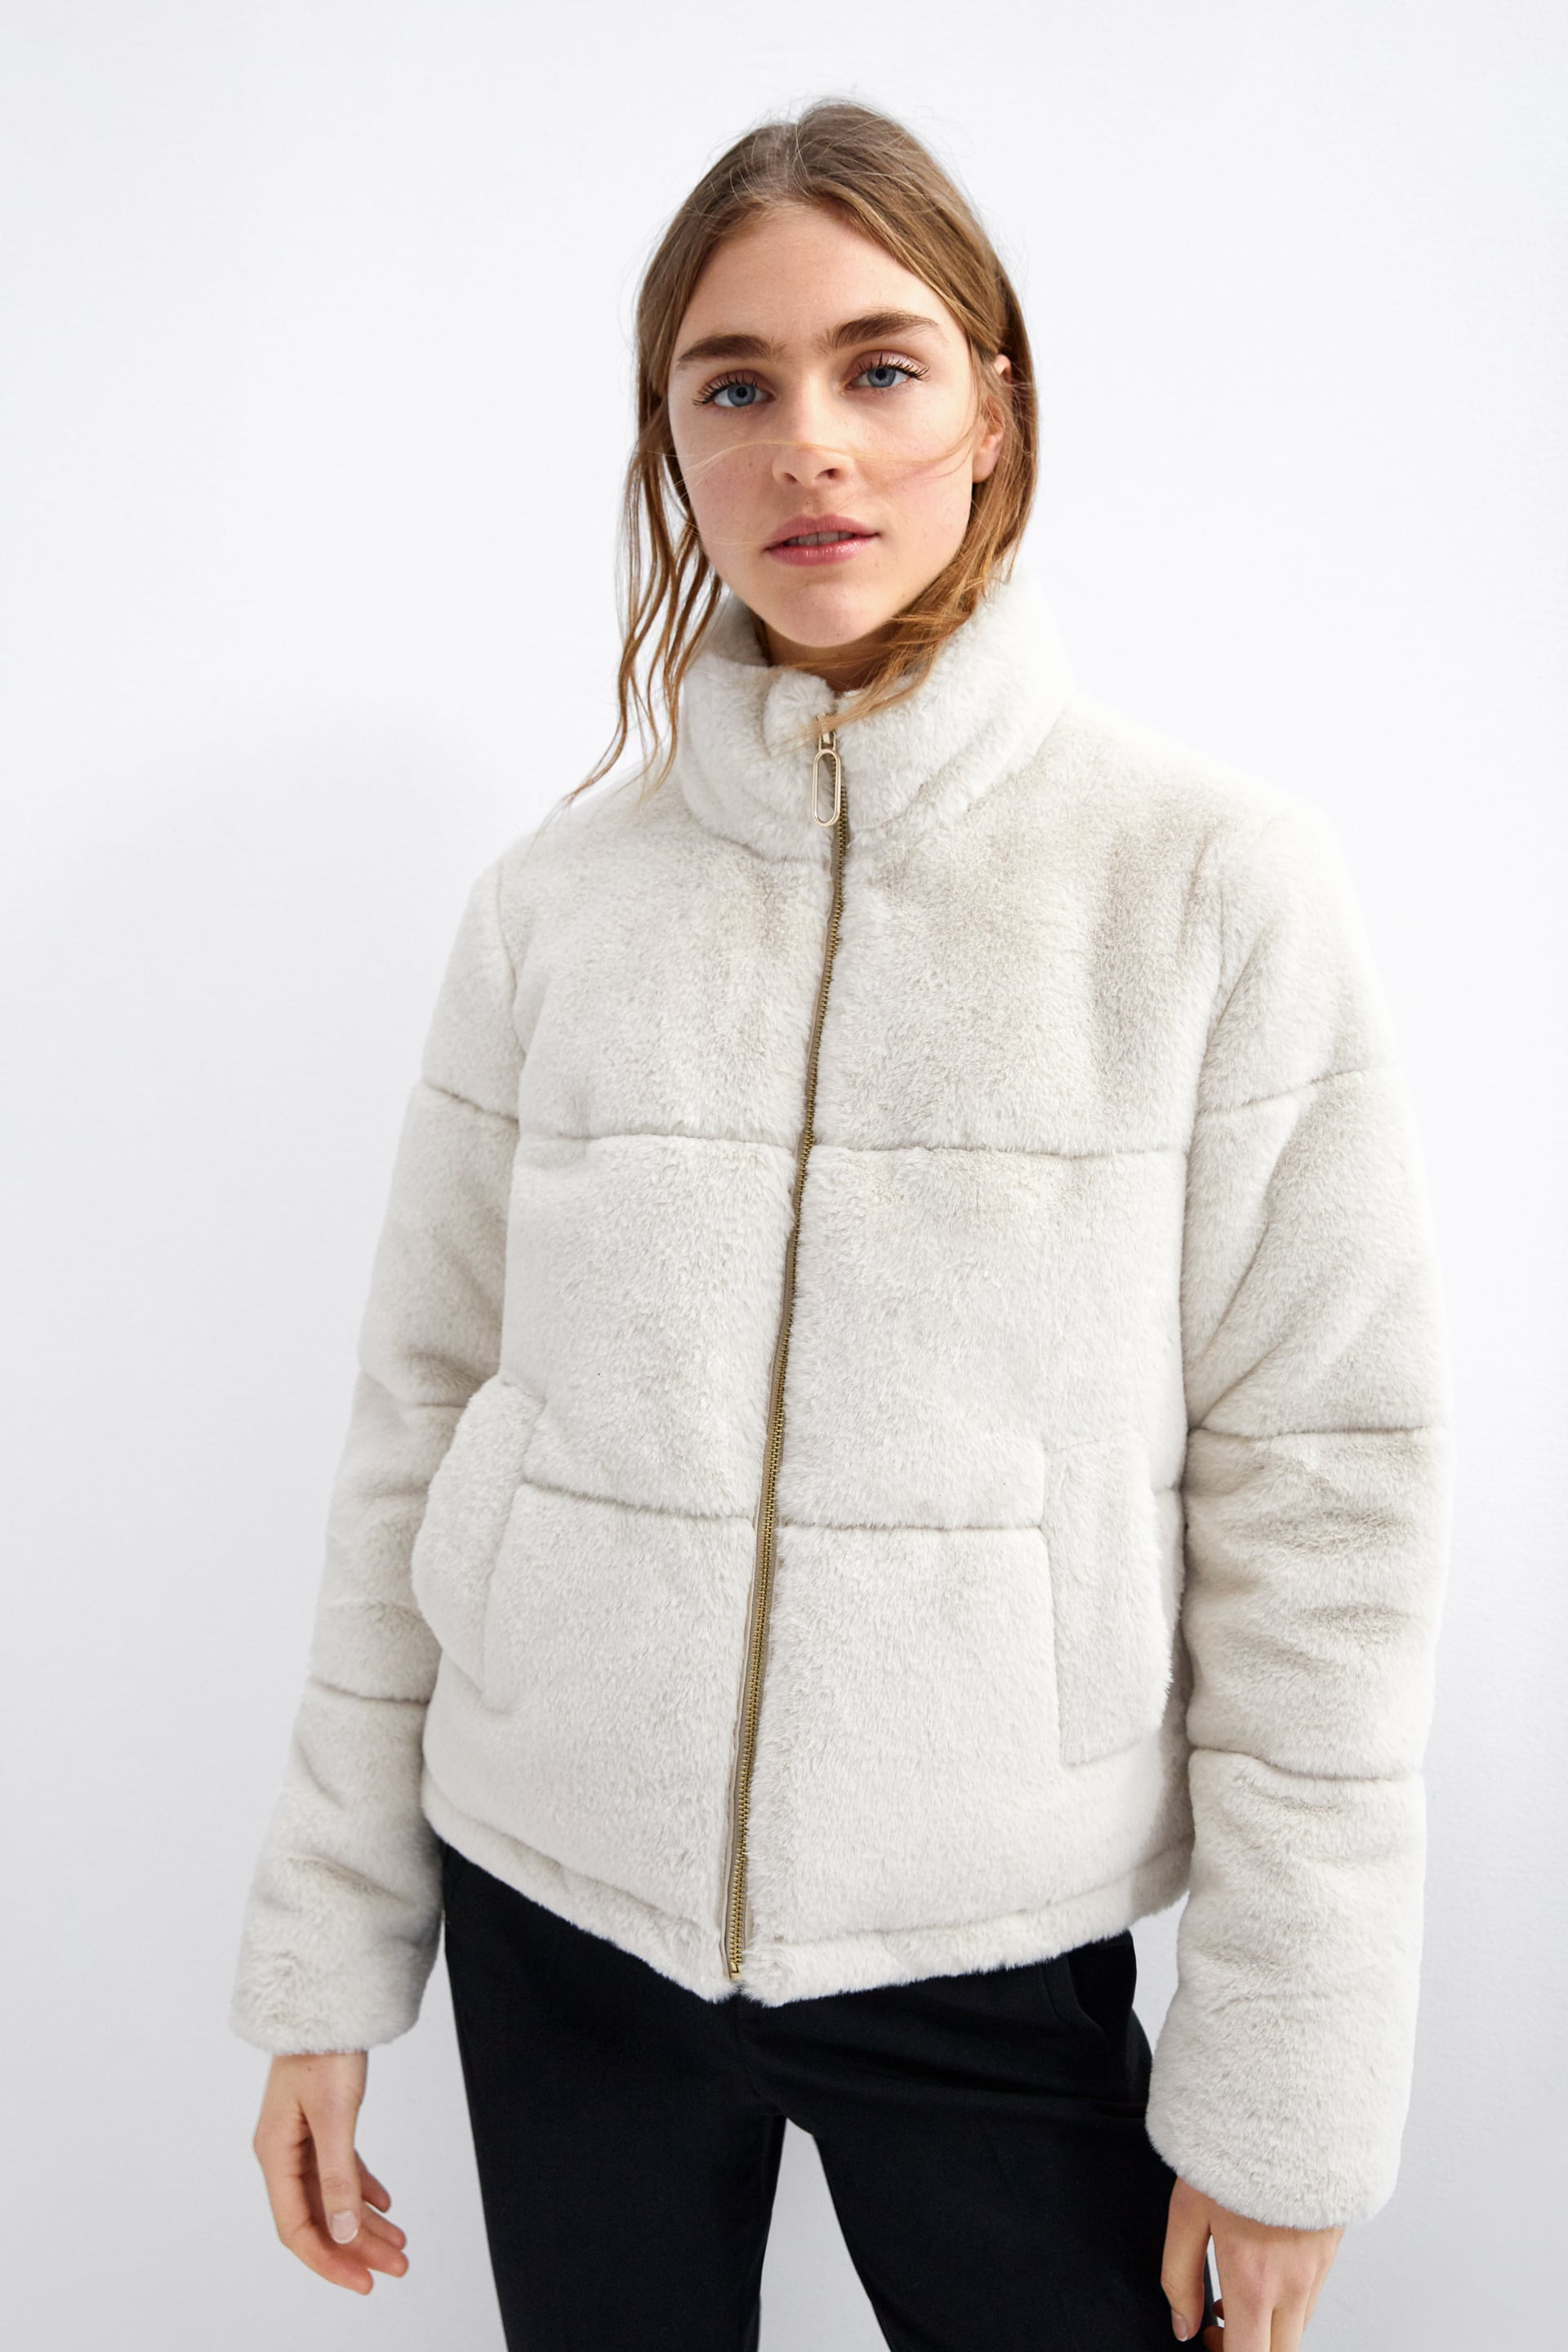 A New Collection Has Finally Arrived At Zara — & We Want